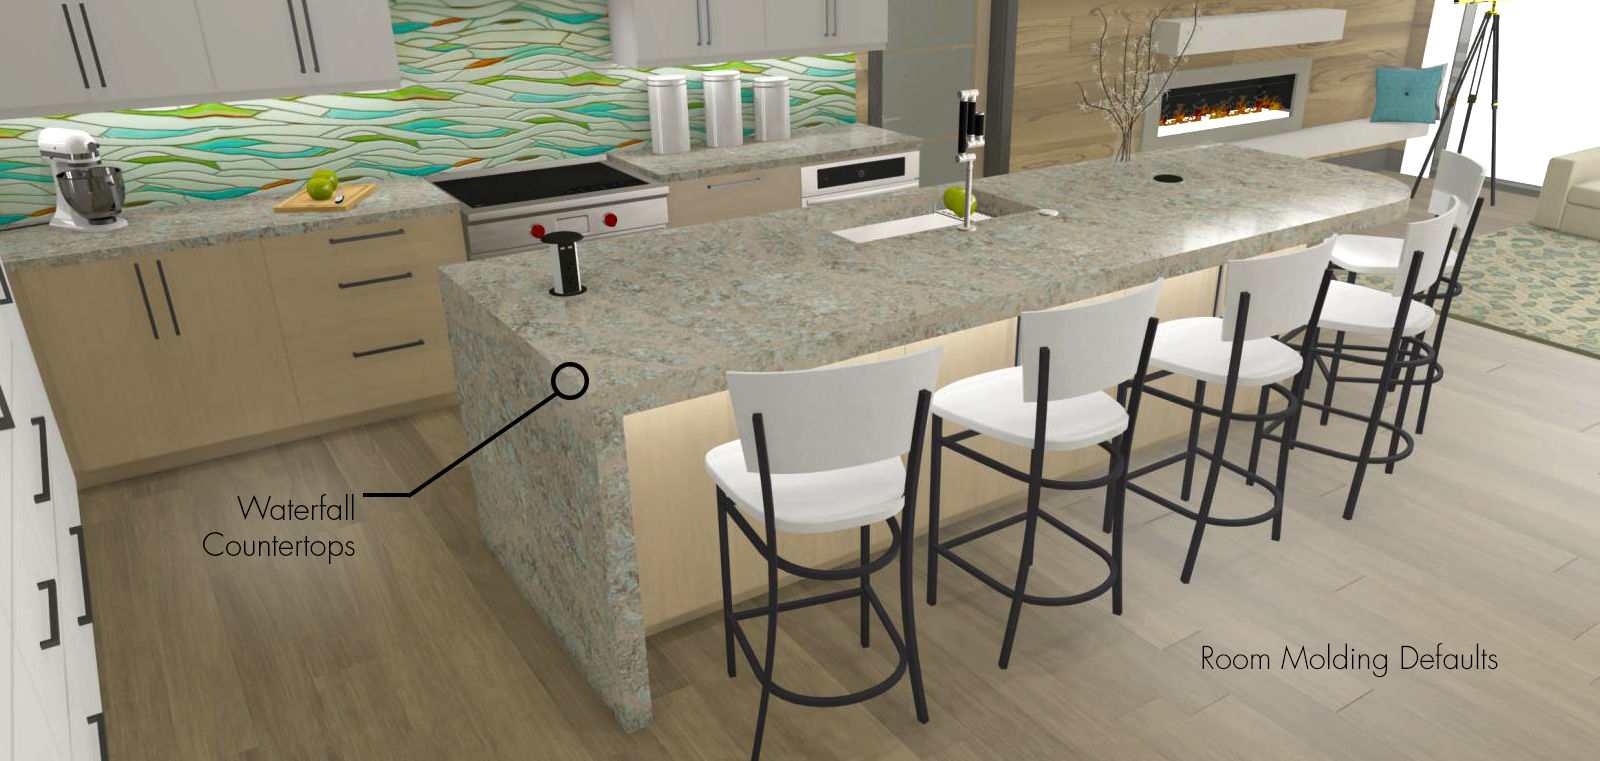 Transitional kitchen and kitchen island with a waterfall countertop.